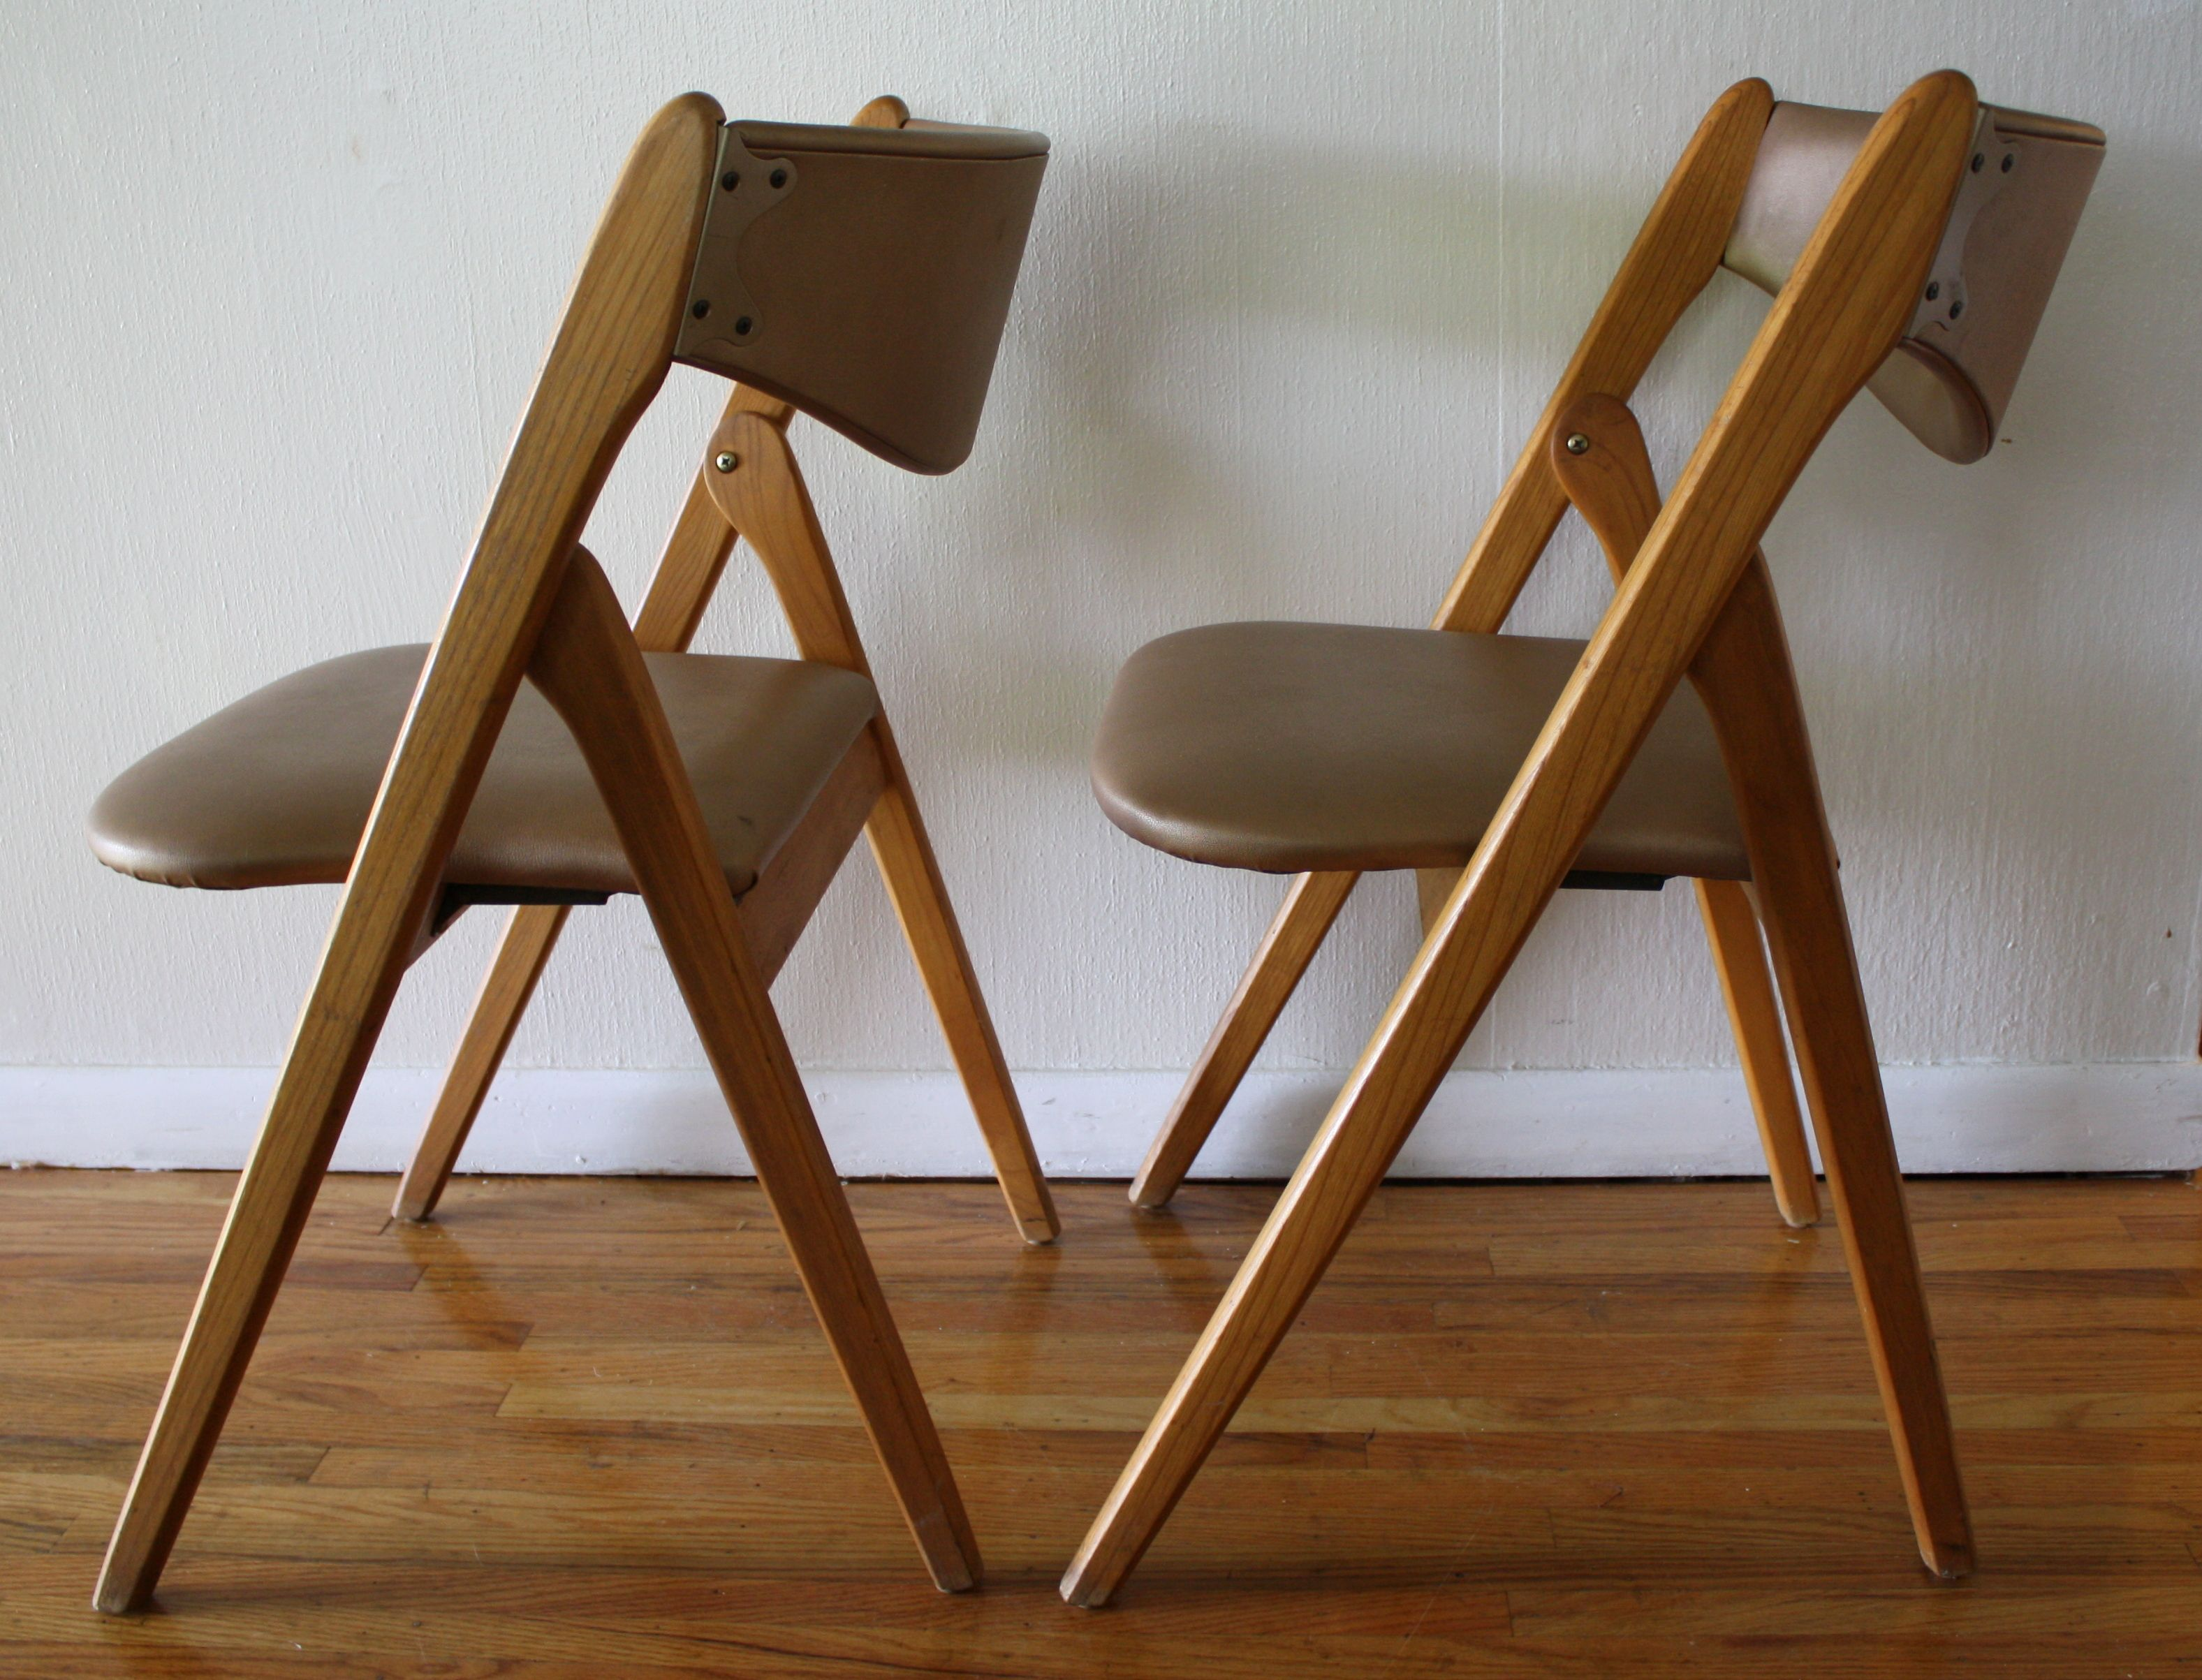 mccabe camping chairs rocking for nursery mid century modern coronet folding this is a pair of danish style they are made by have solid wood